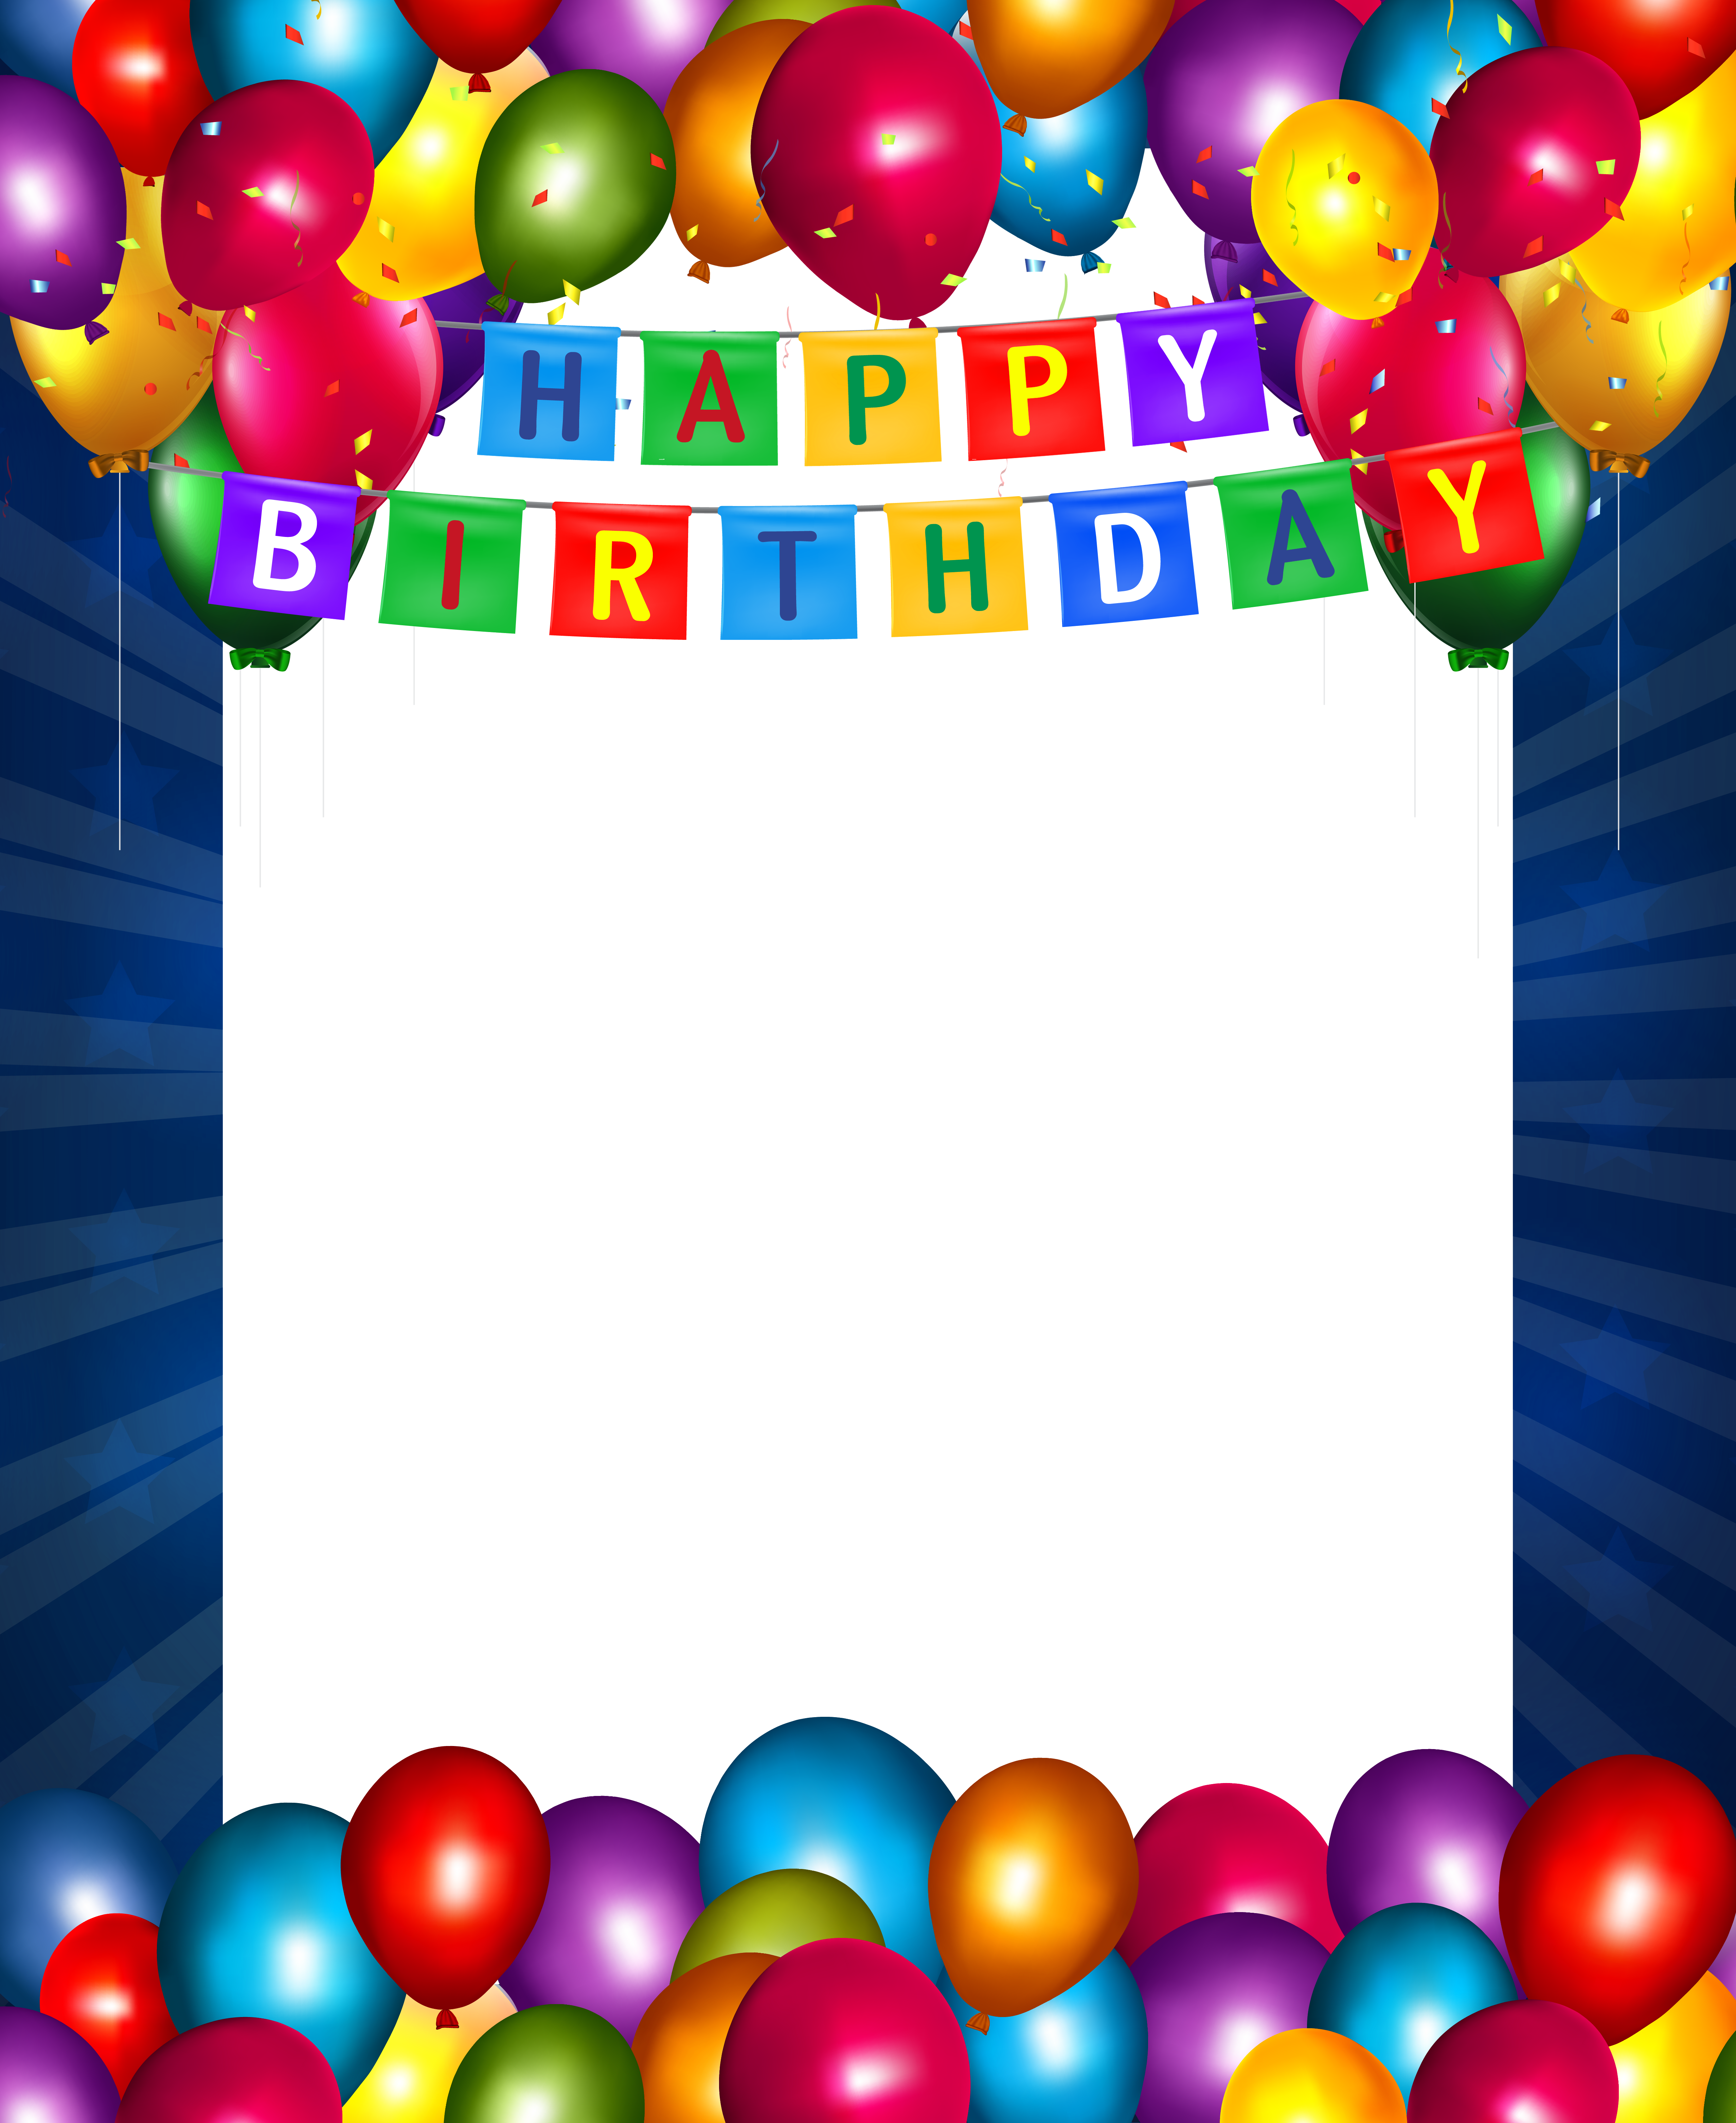 Pin by aoril on. Frame clipart happy birthday clipart black and white download